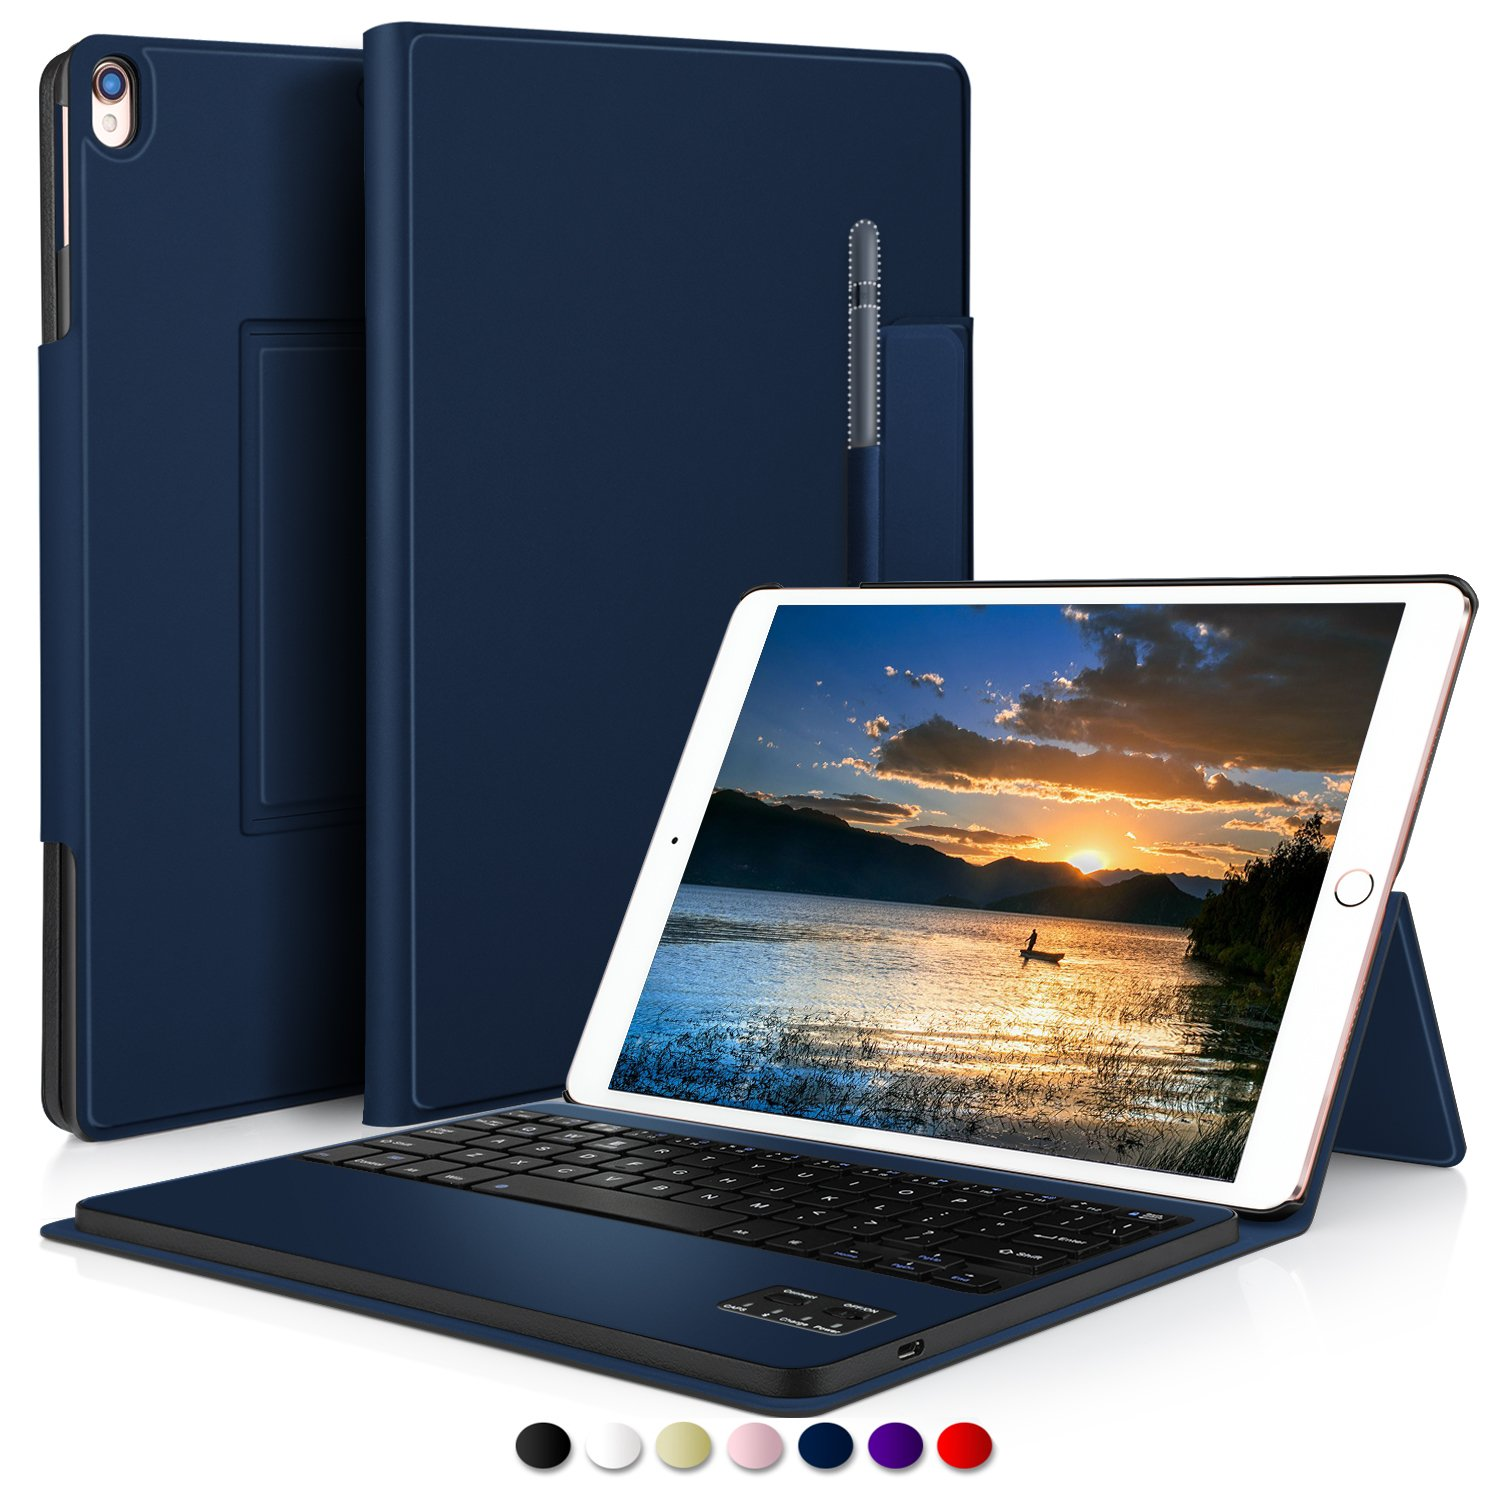 IVSO Apple iPad Pro 10.5 Case with Keyboard Ultra-Thin Detachable Wireless Keyboard Stand Case/Cover + Pencil Holder for Apple iPad Pro 10.5-inch 2017 Version Tablet (Blue)